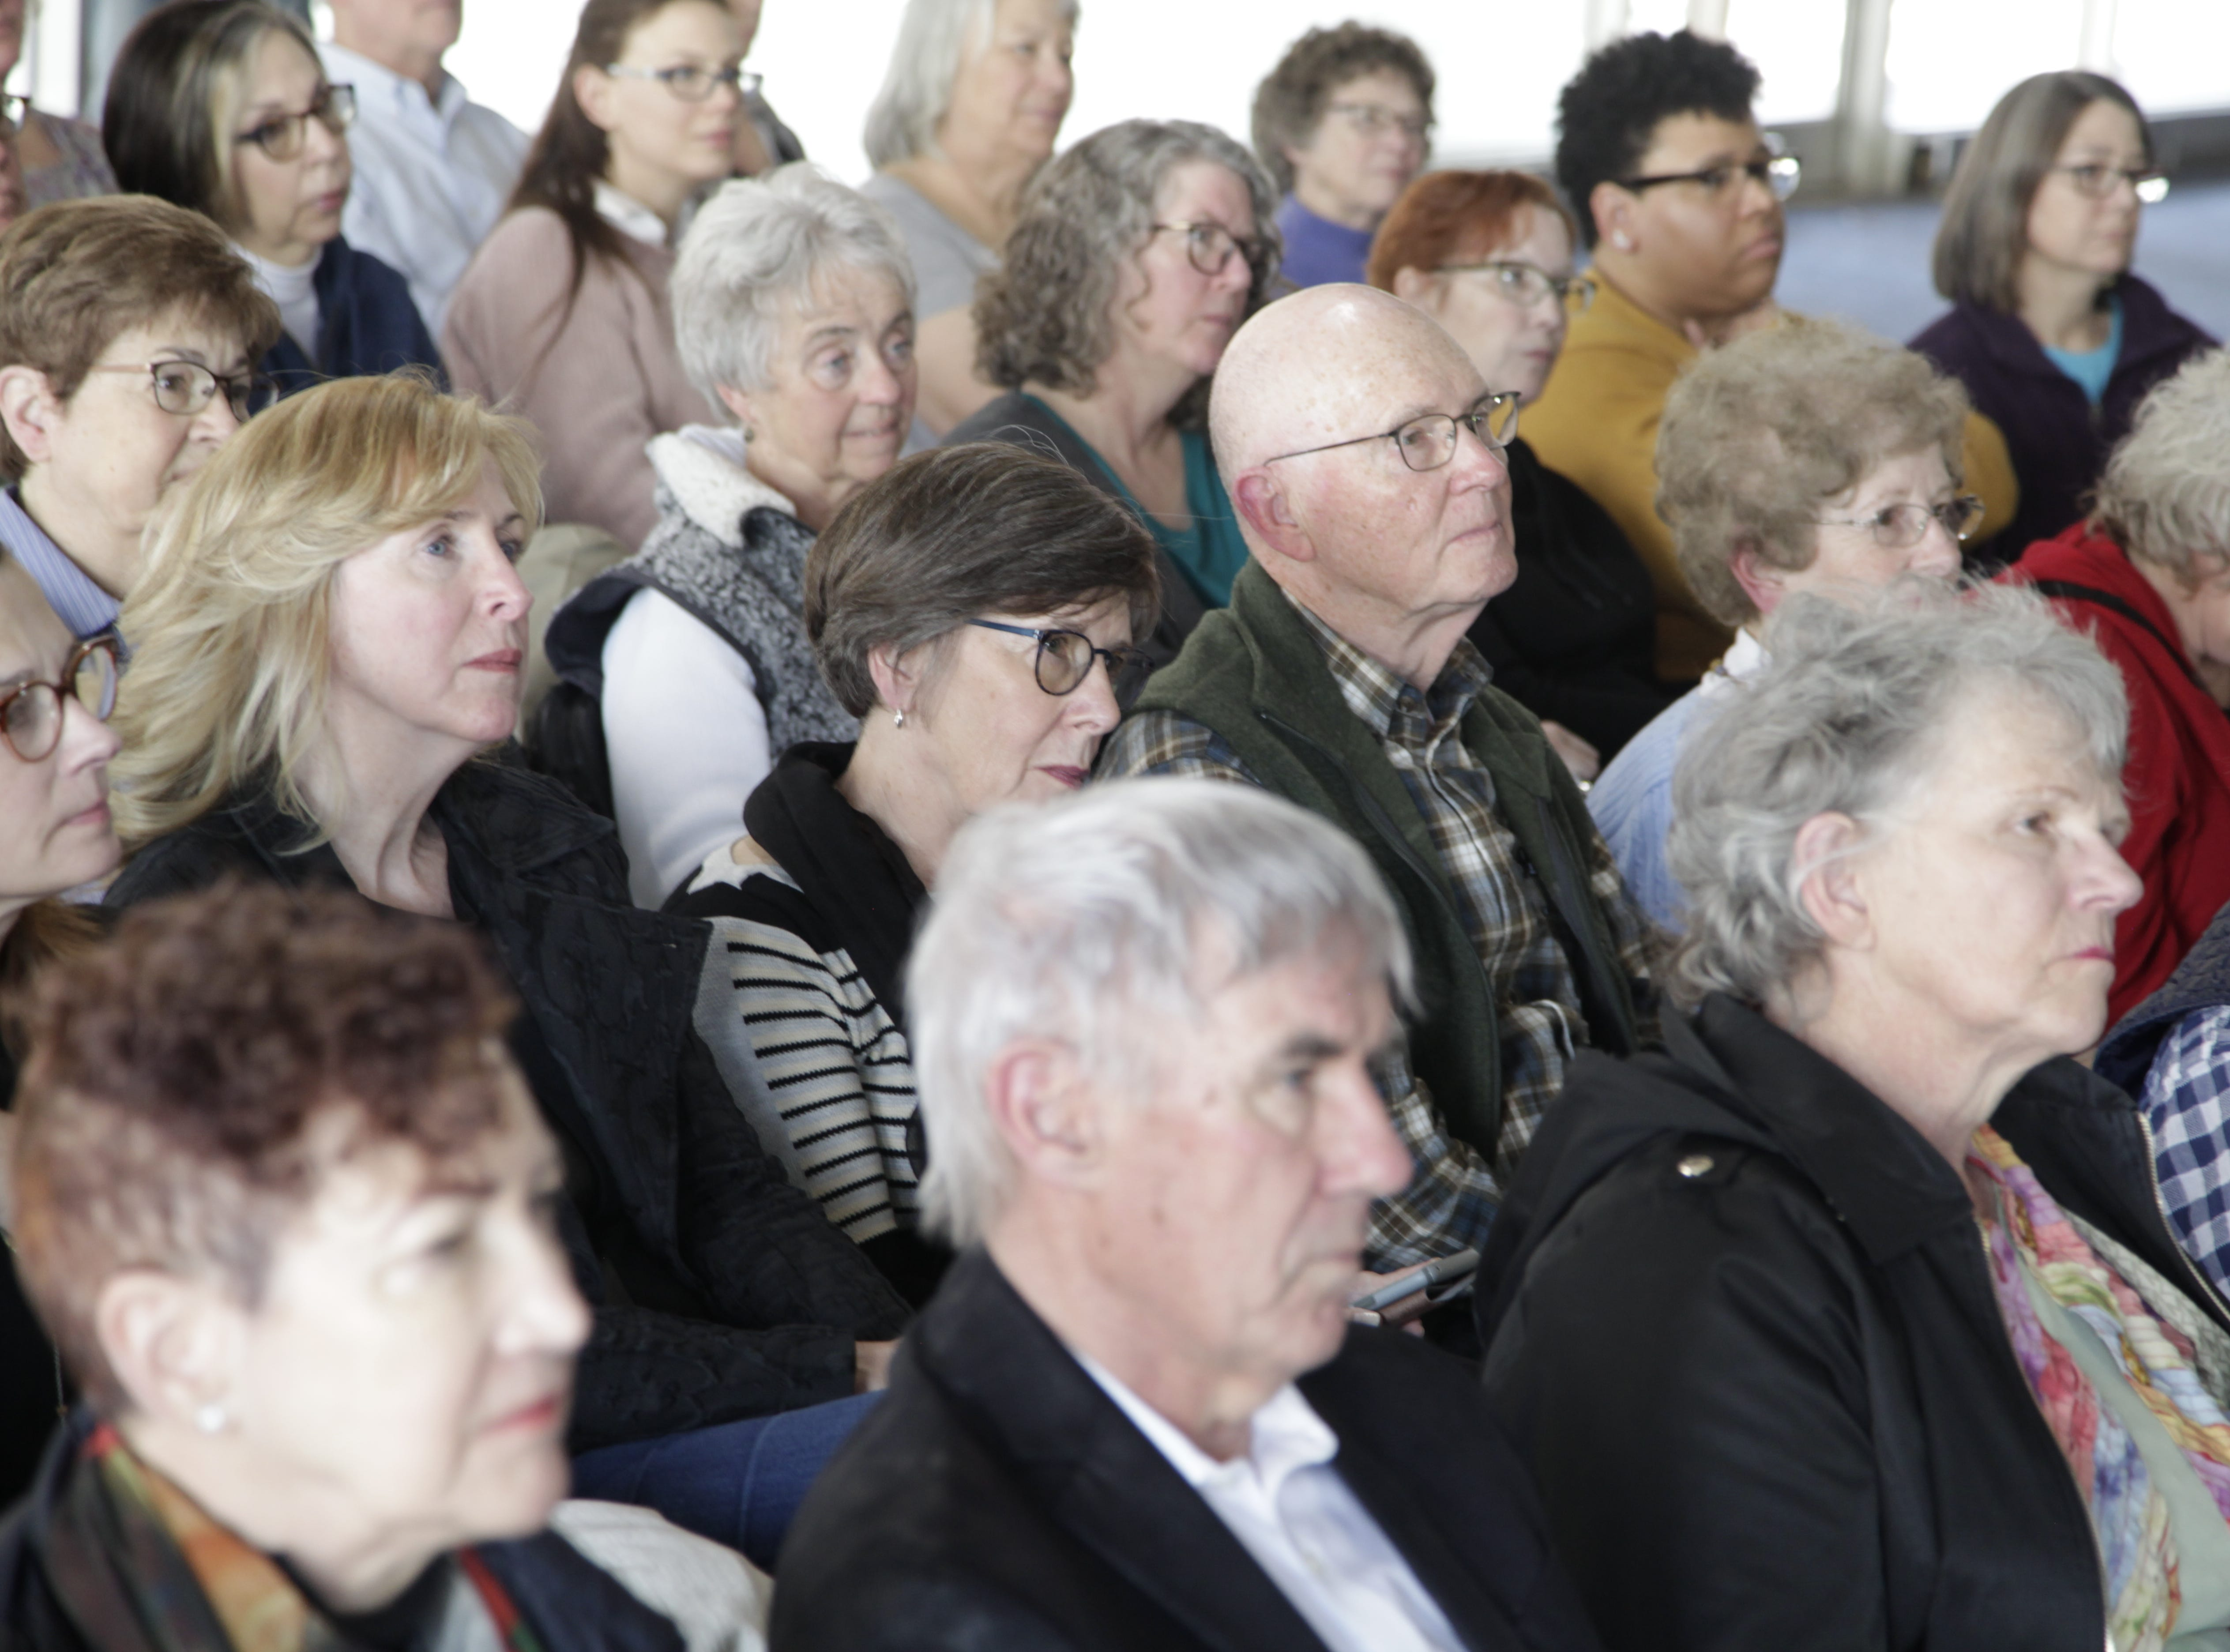 Audience members listened to author Susan Orlean, who spoke at the DSM Book Festival downtown on Saturday, March 30, 2019.